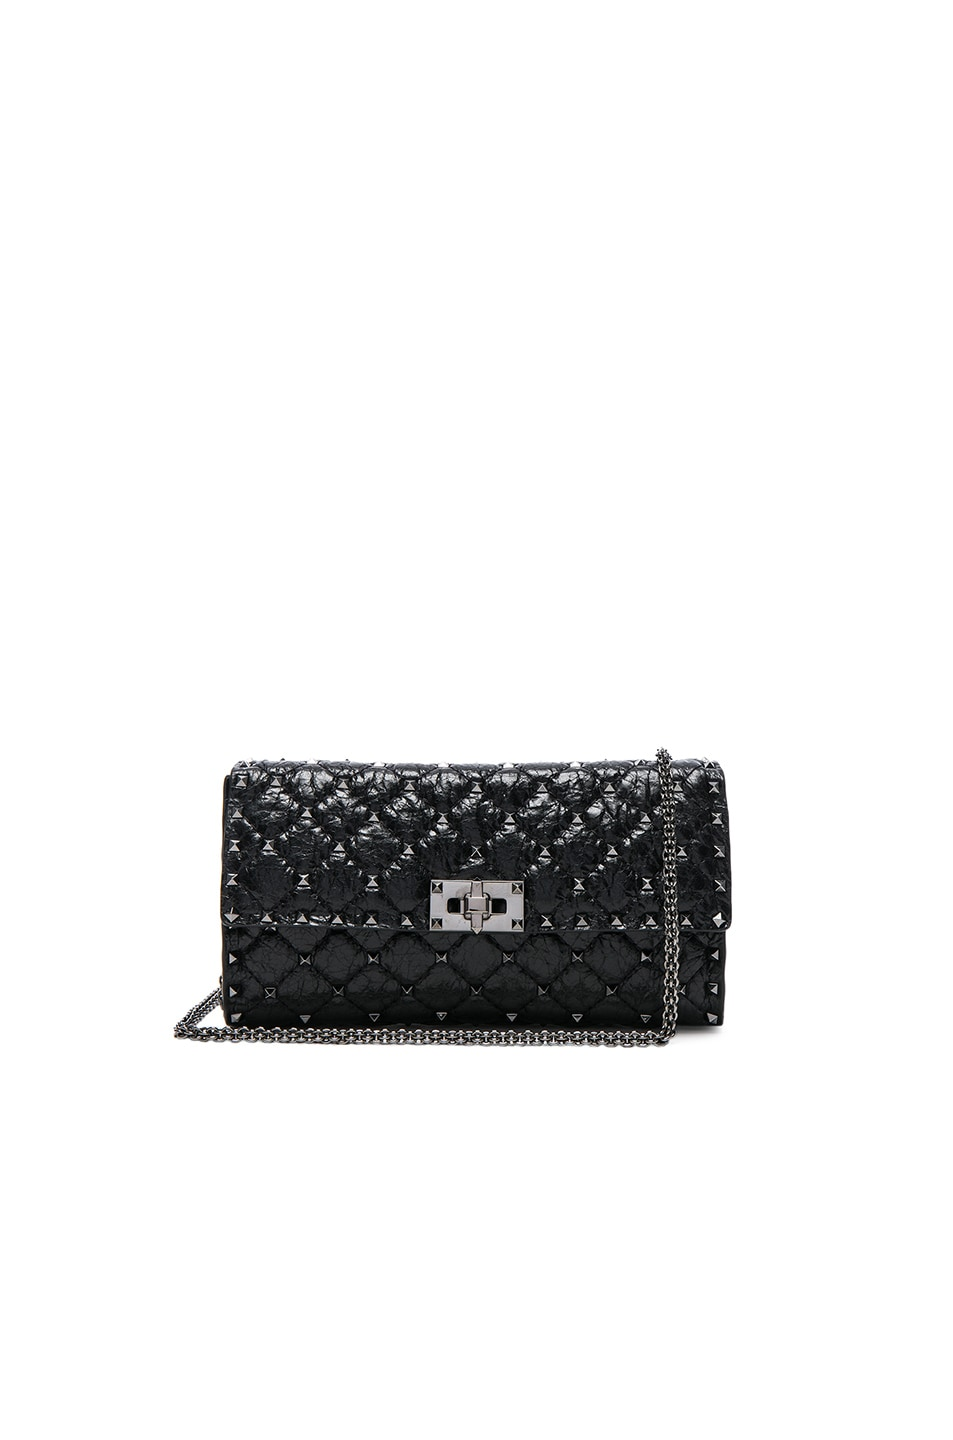 Image 1 of Valentino Rockstud Spike Clutch in Black